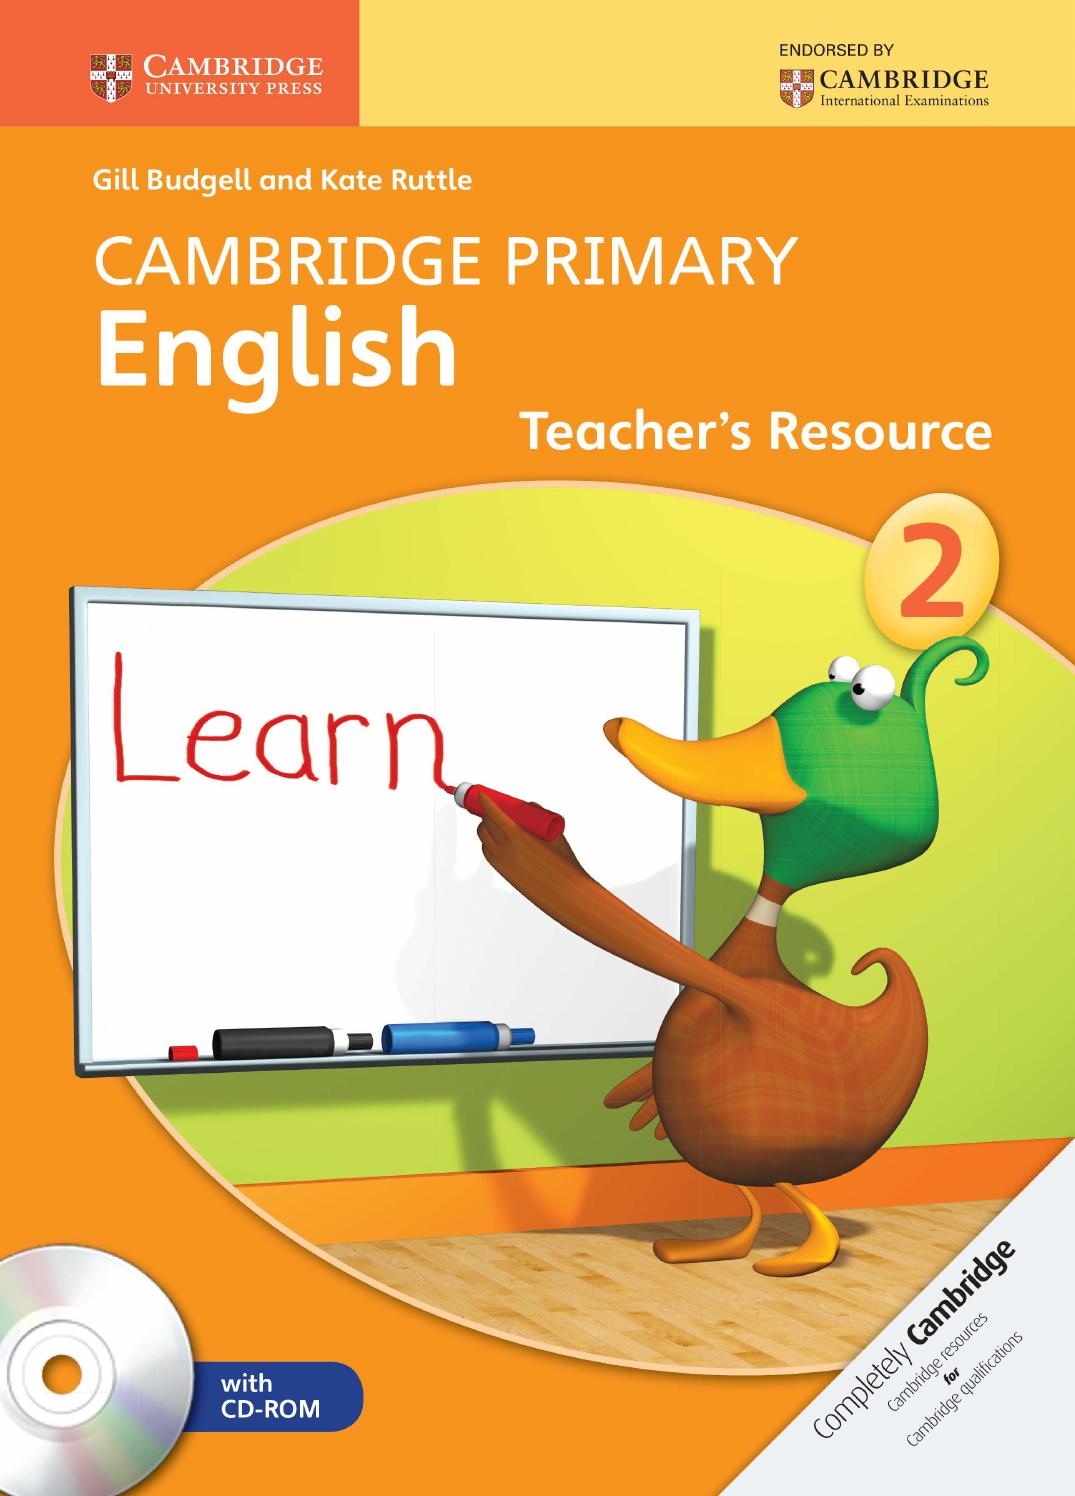 Preview Cambridge Primary English Teacher S Resource Book 2 By Cambridge University Press Education Issuu